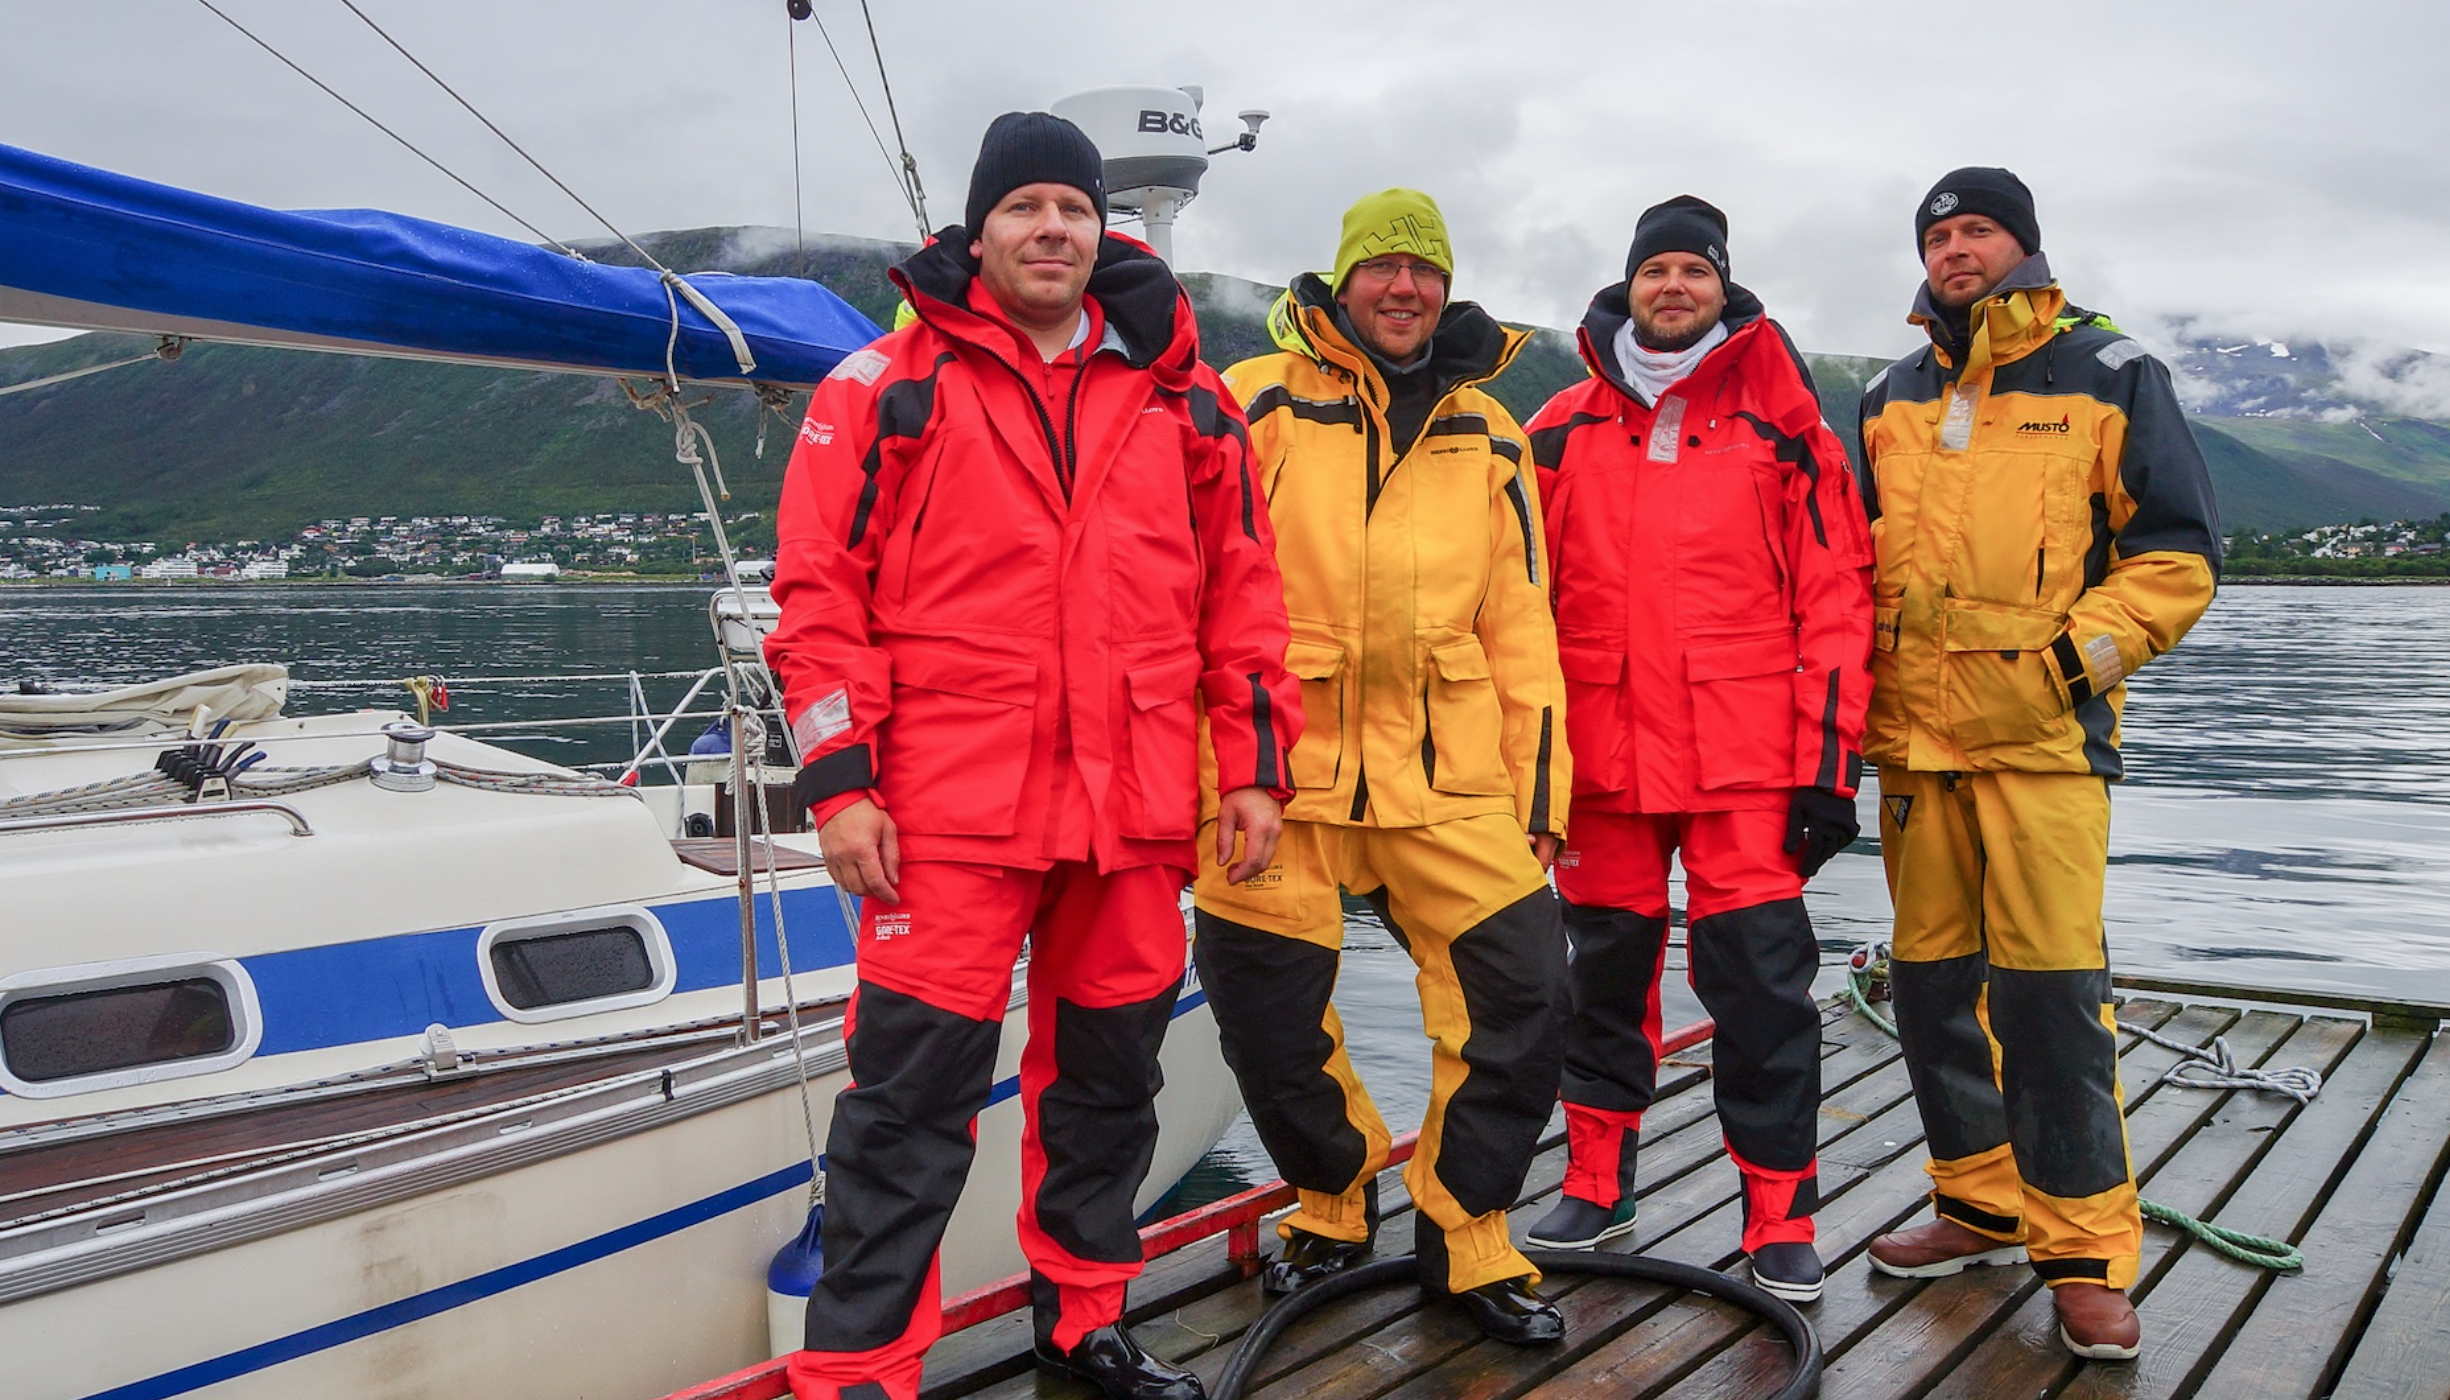 The jolly crew of S/Y Ruffe